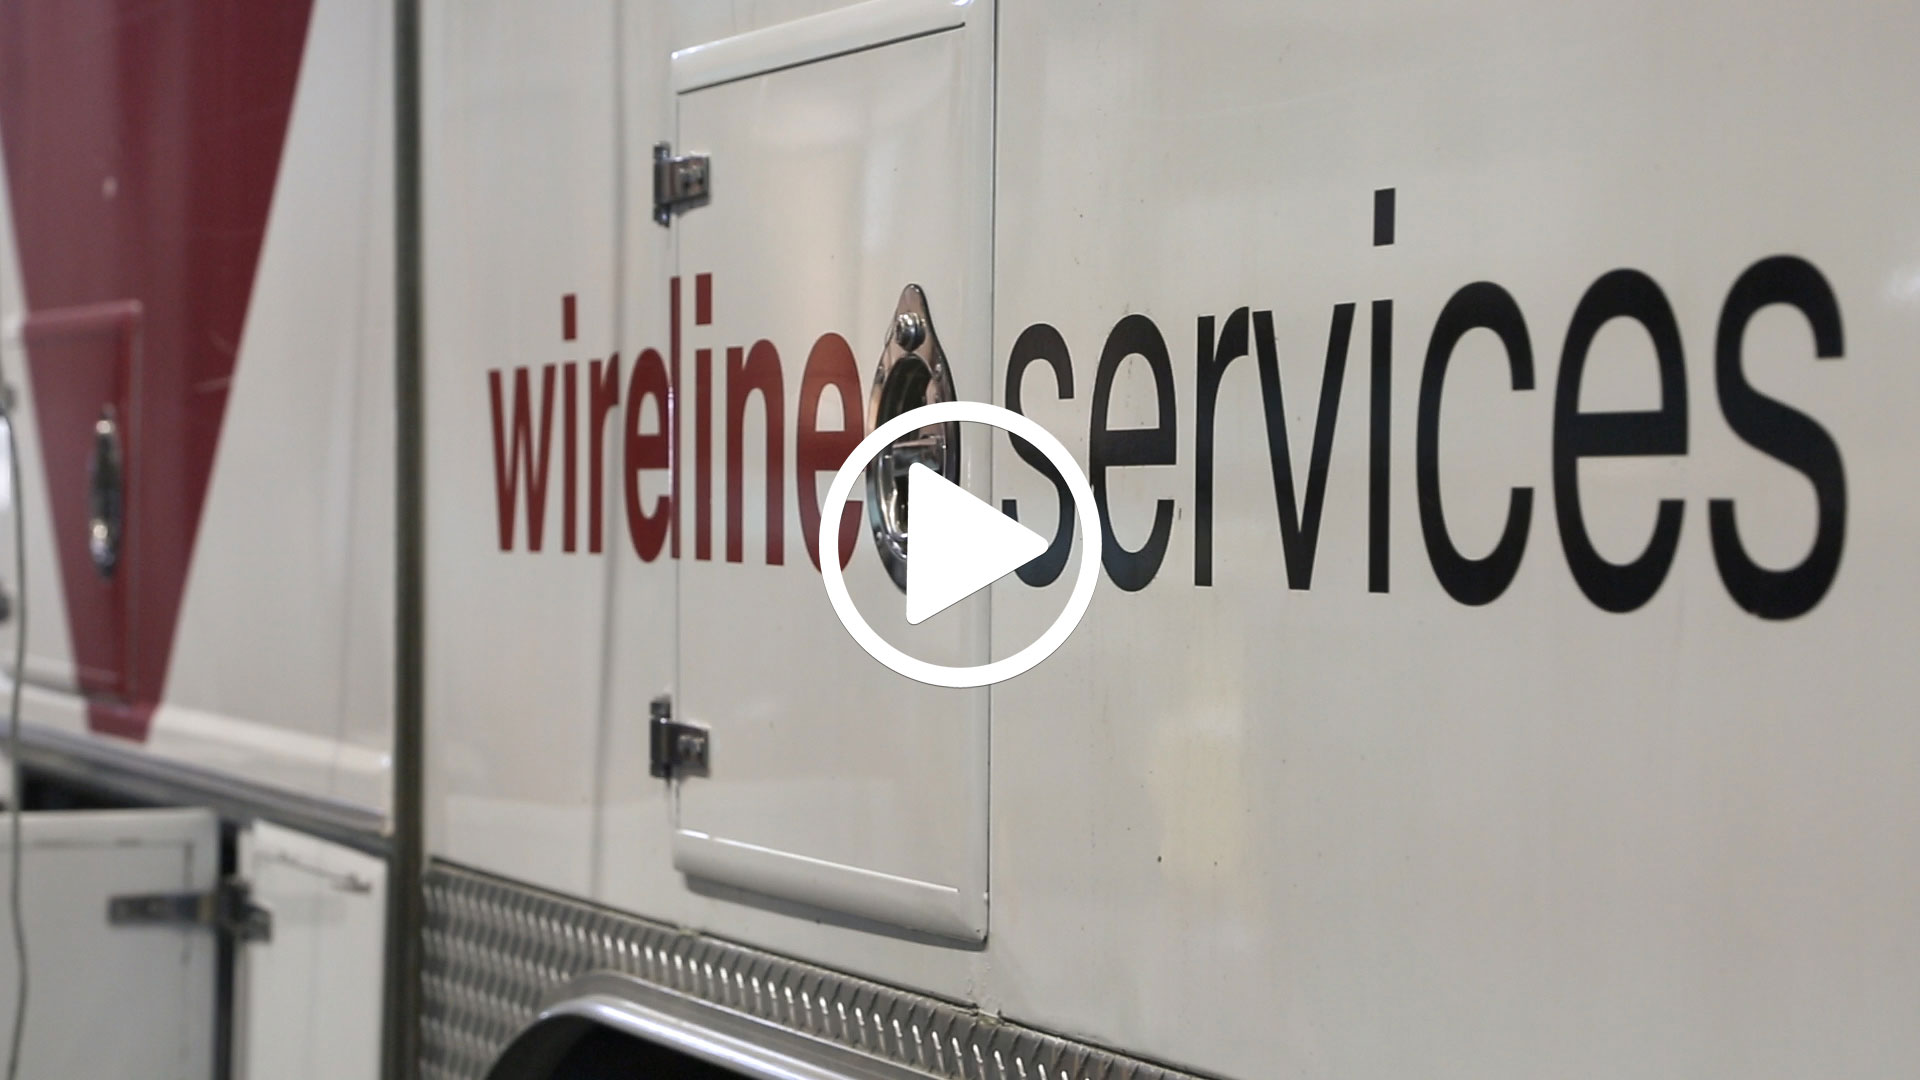 Watch our careers video for available job opening Wireline Field Operator in Clay City, IL